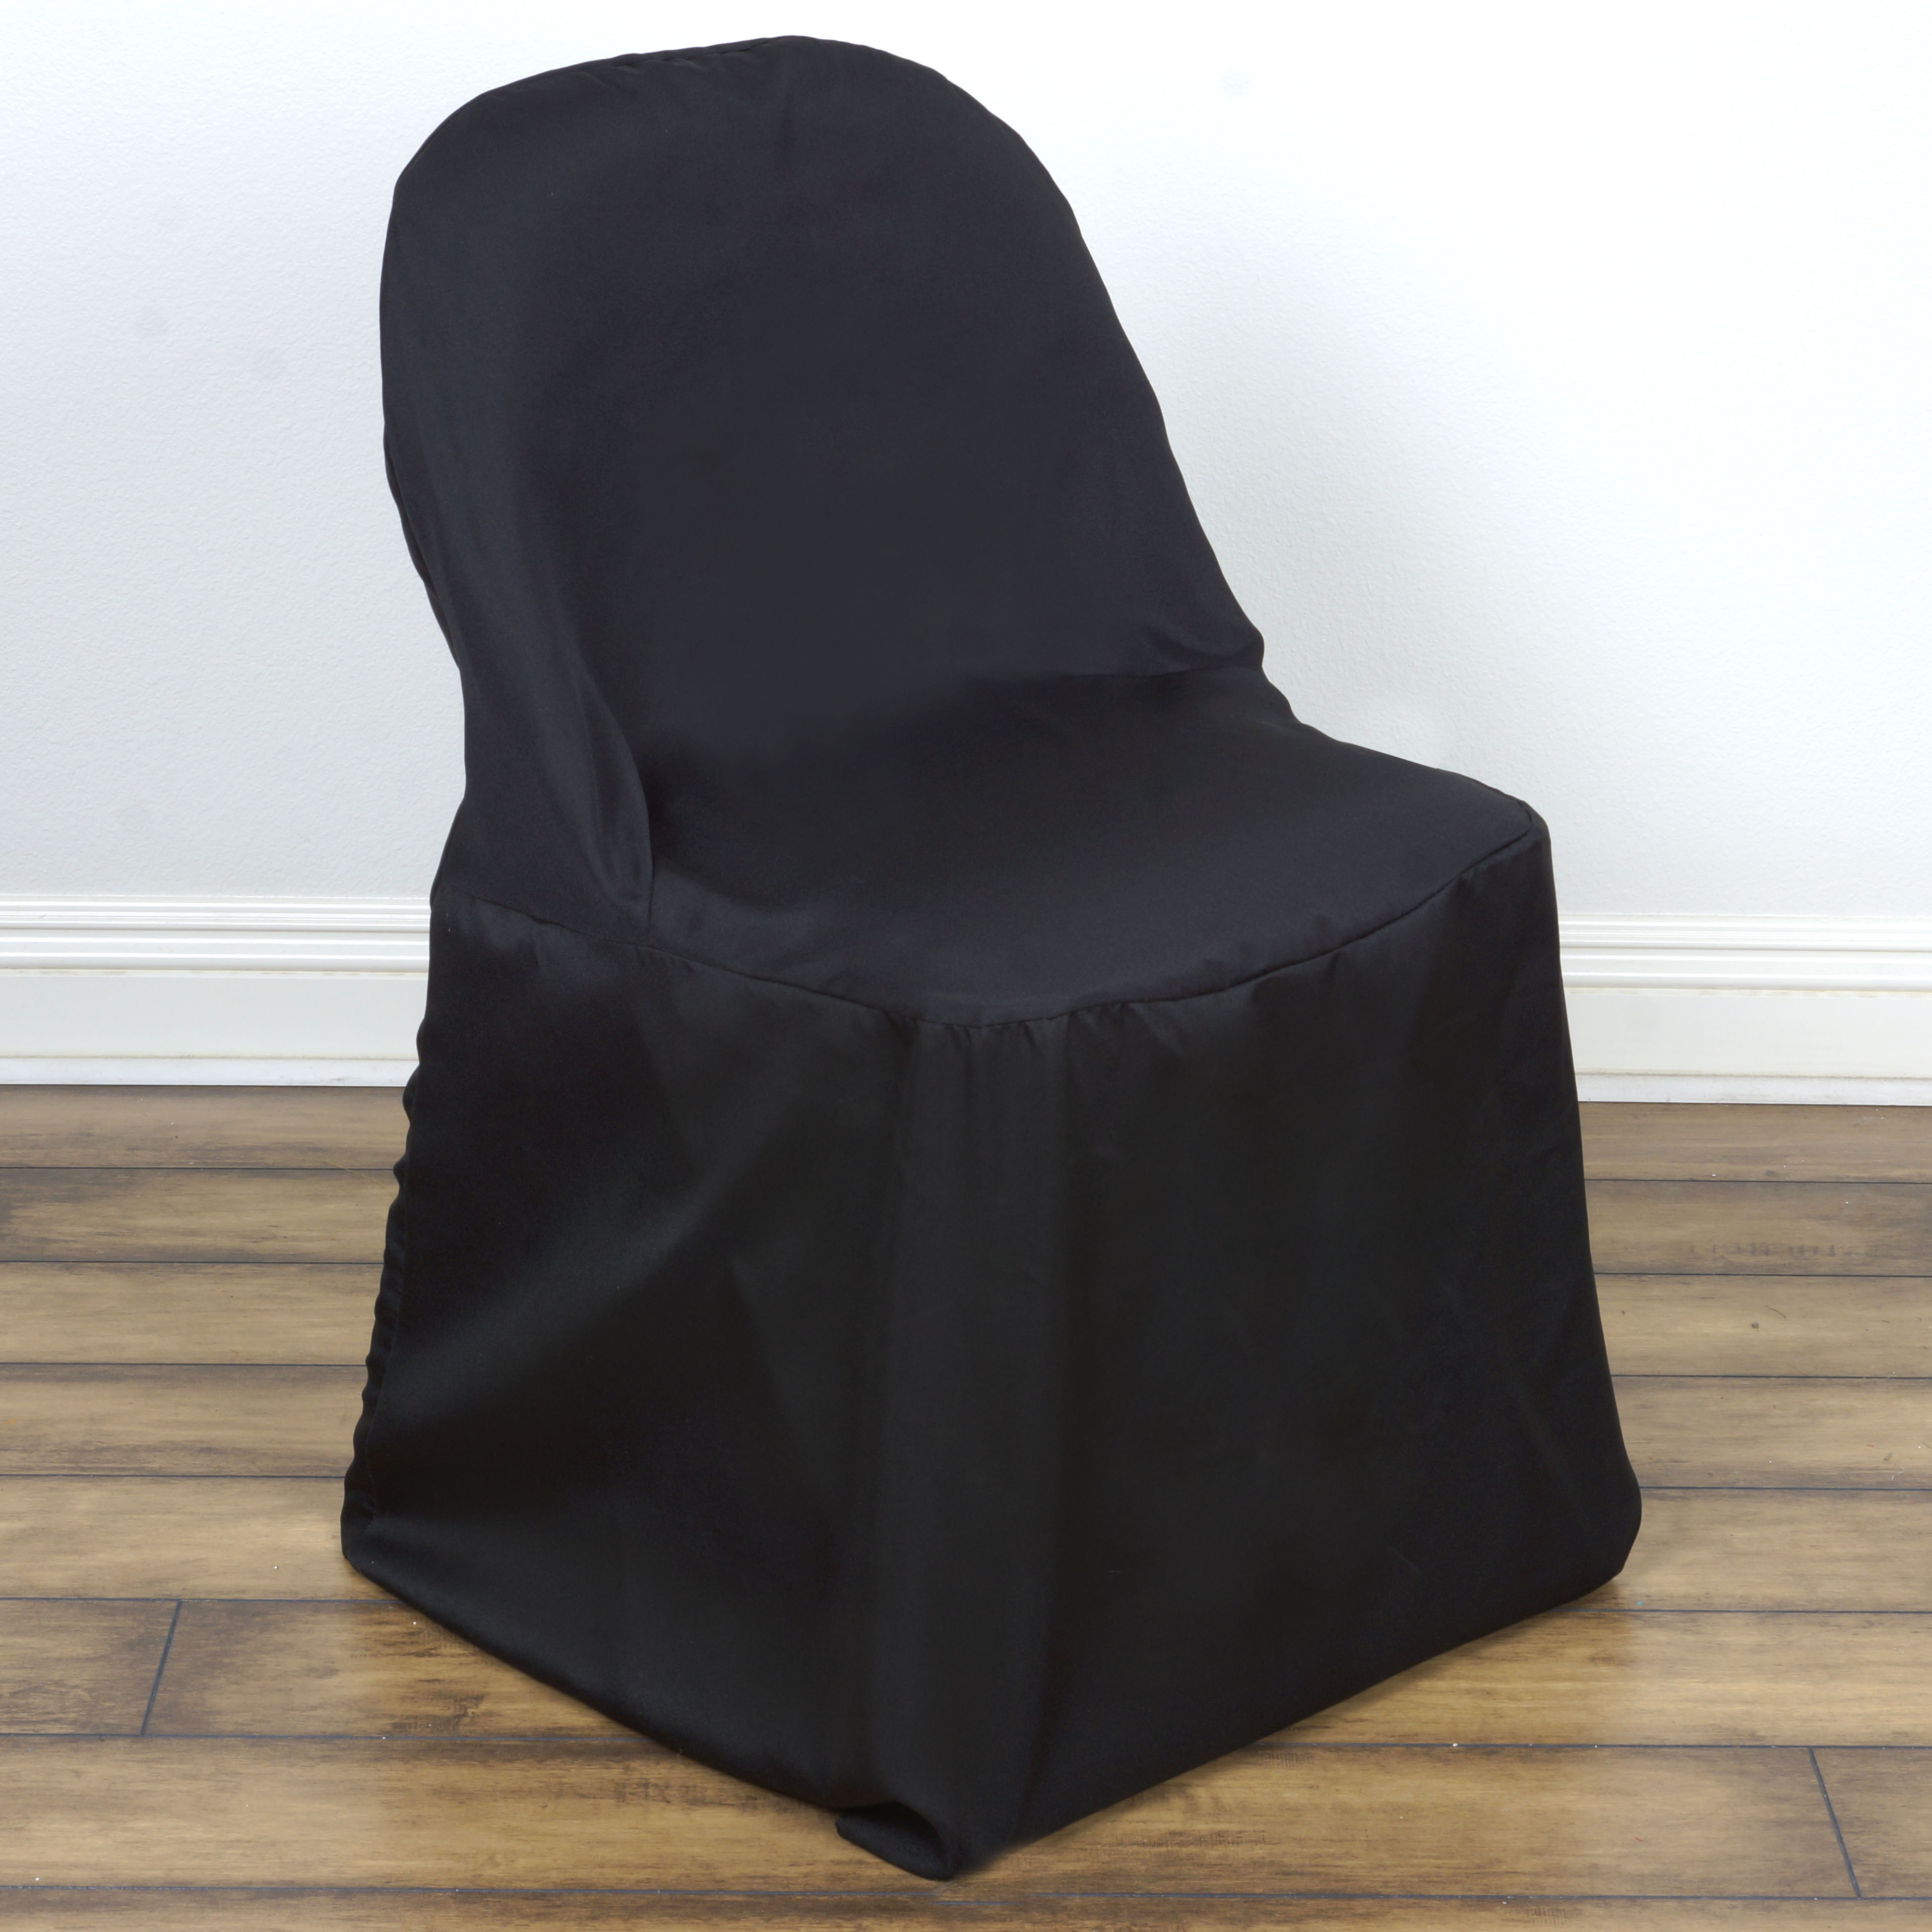 Discount Chair Covers